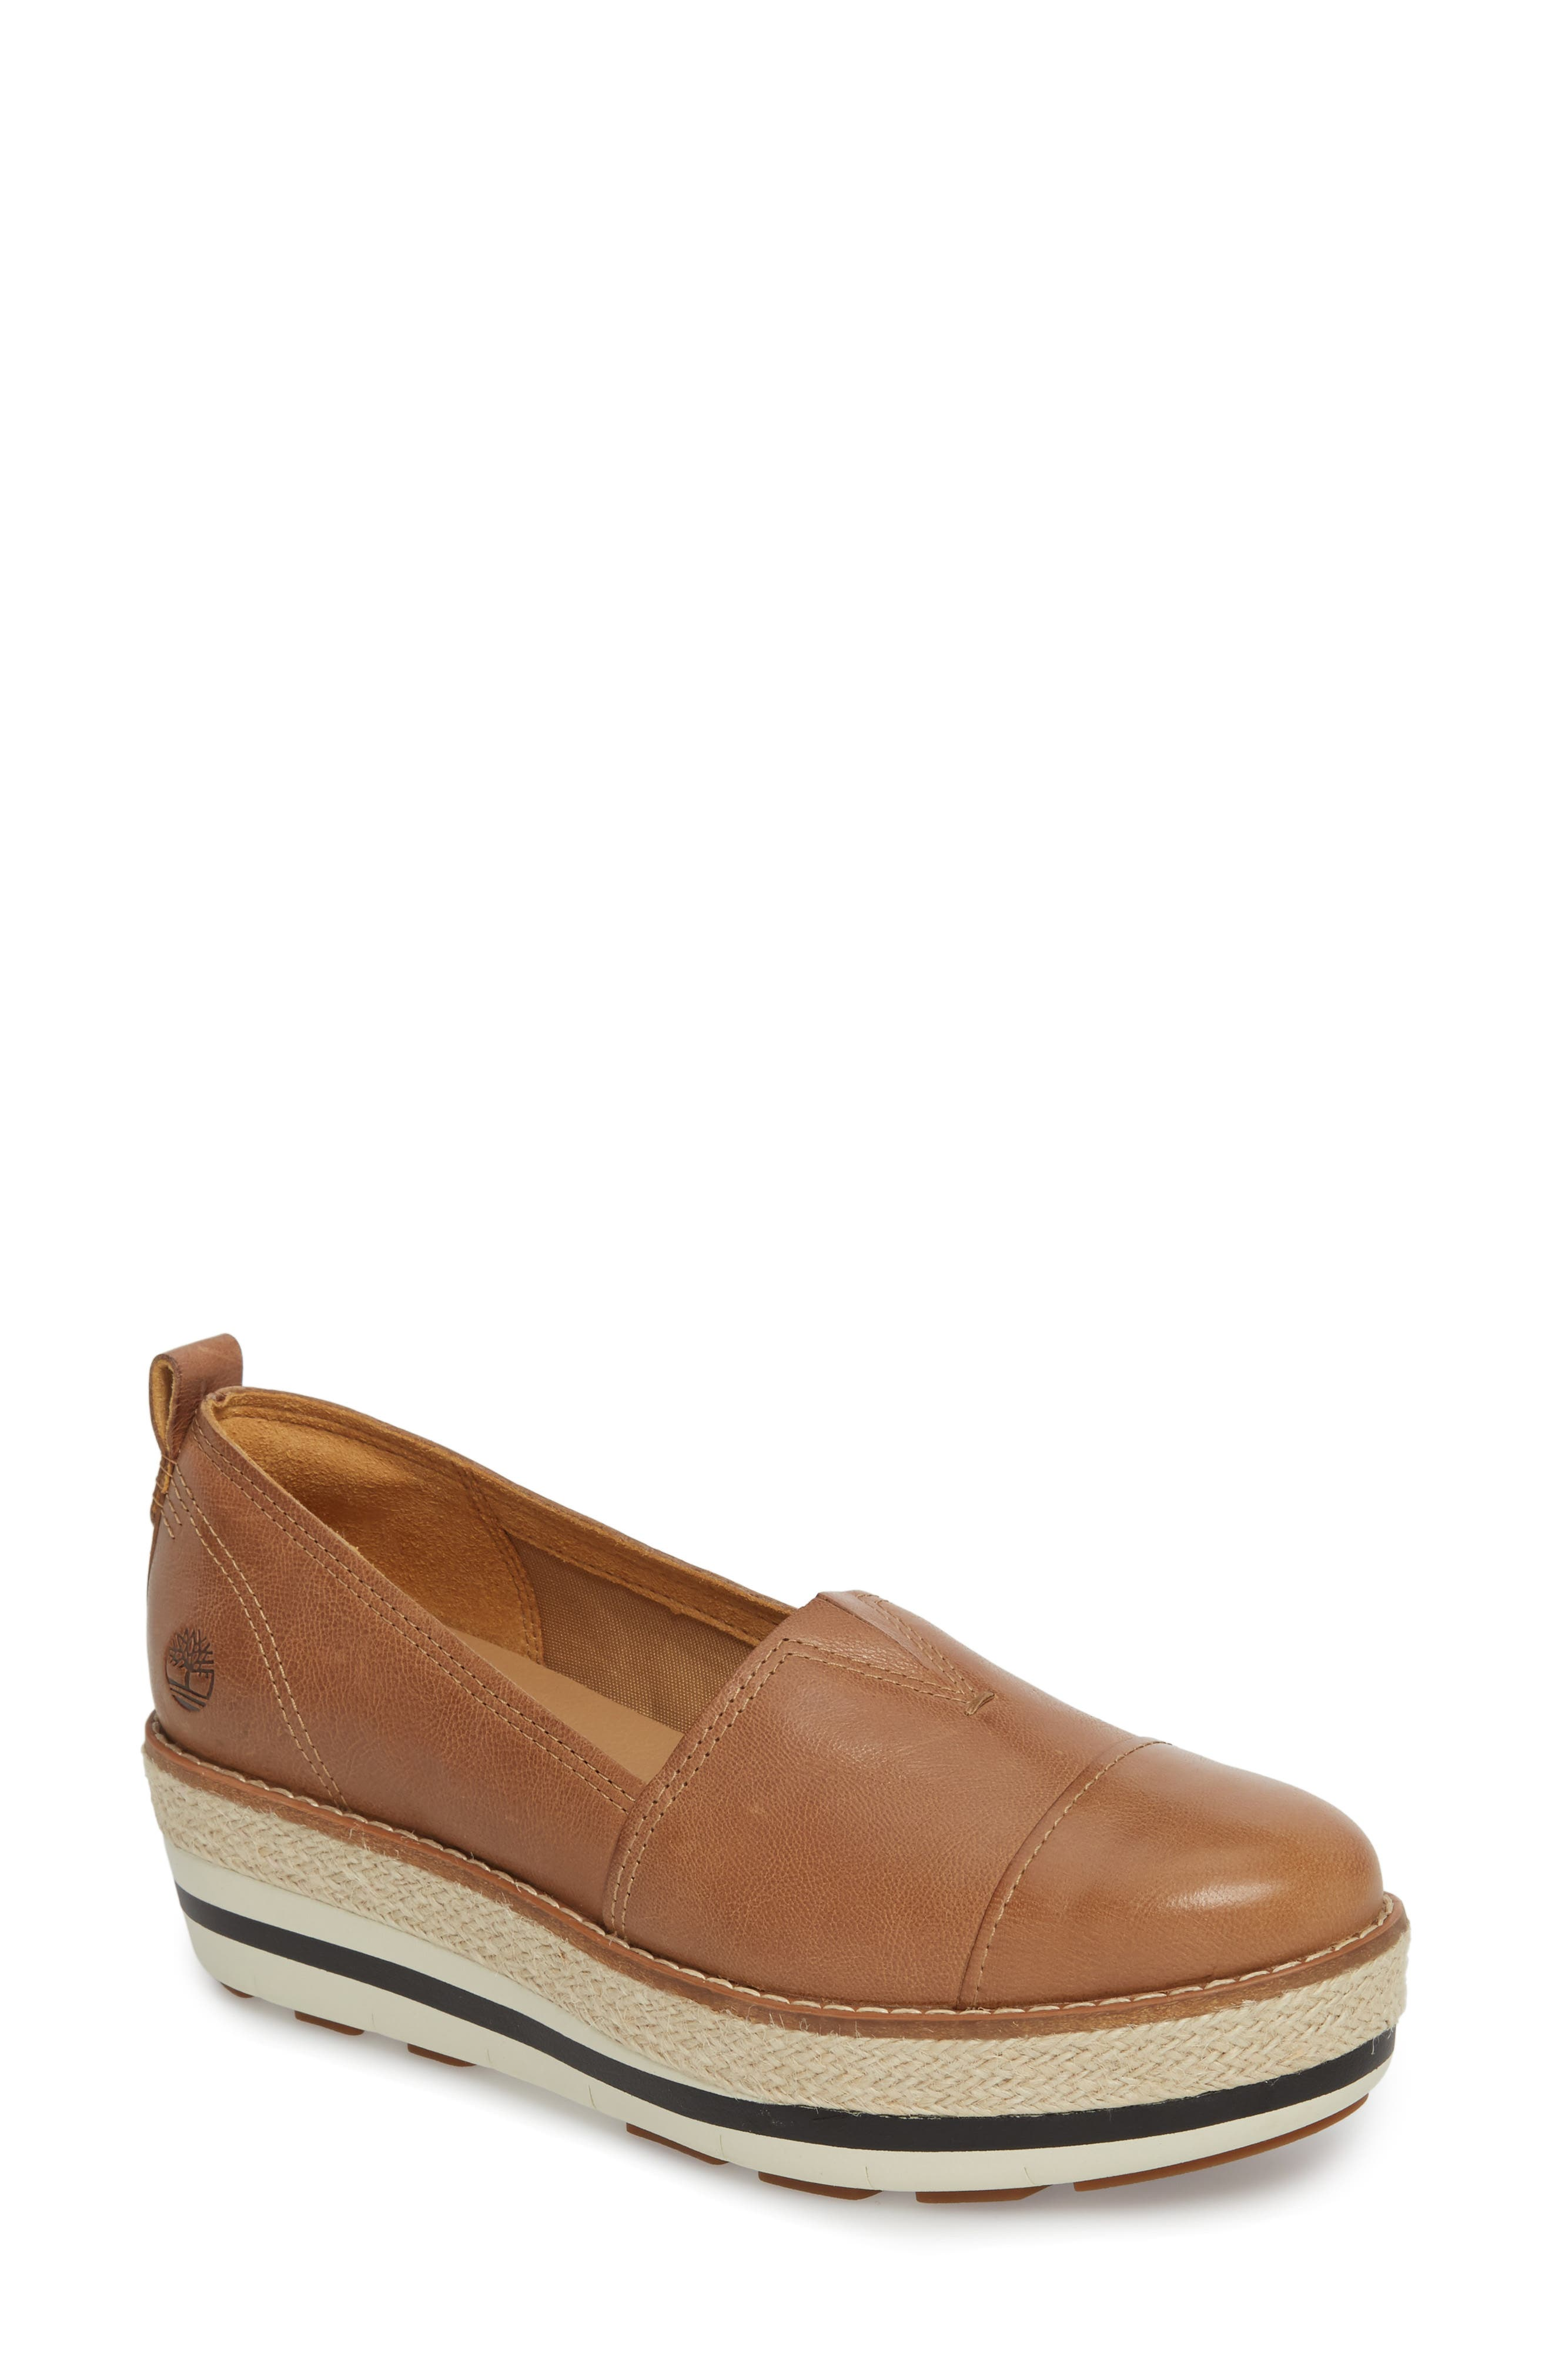 Emerson Platform Slip-On,                         Main,                         color, Iced Coffee Leather